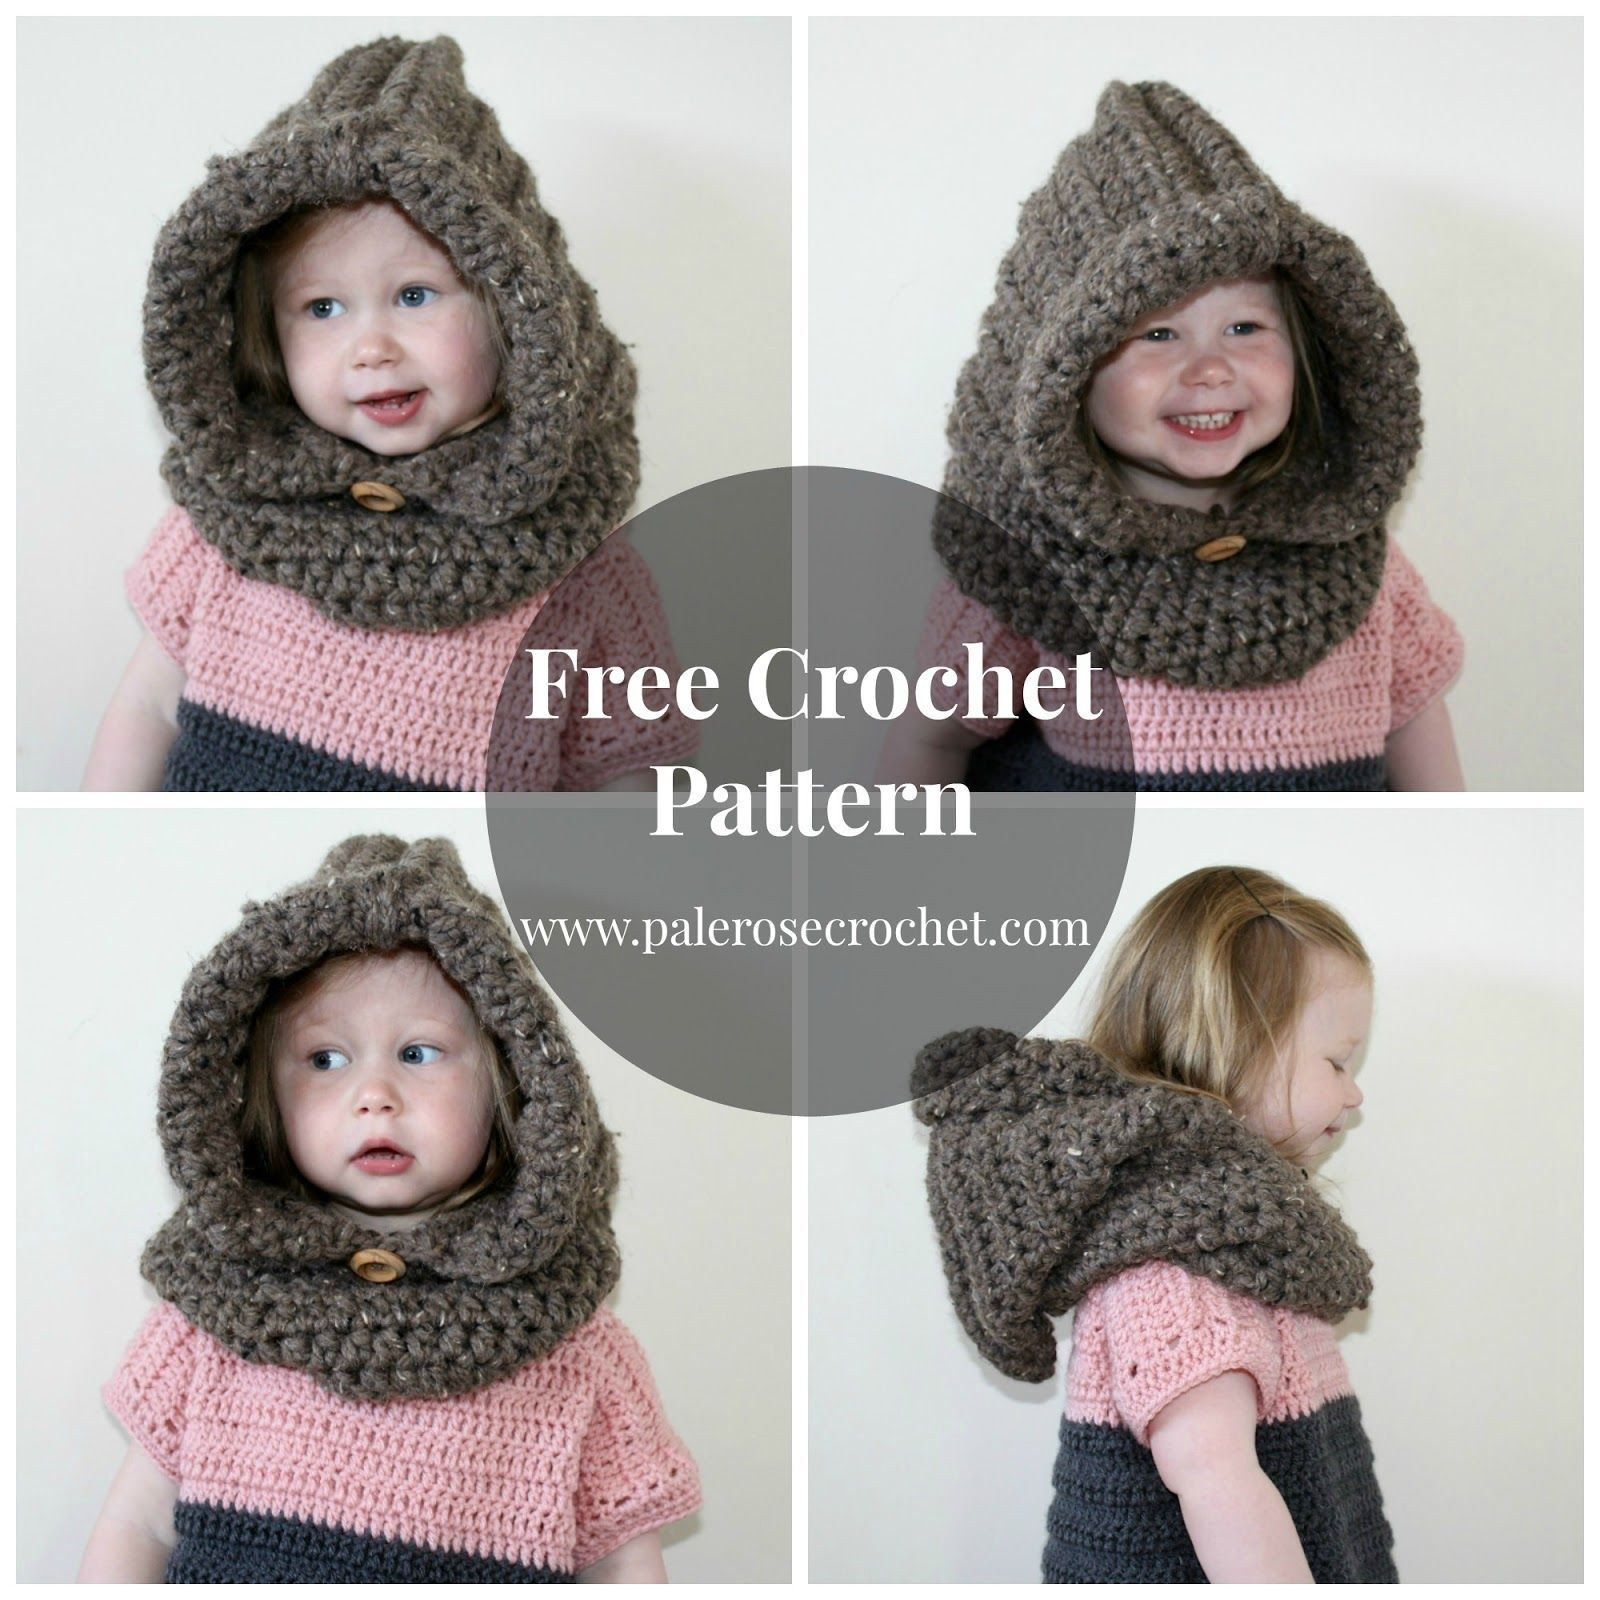 Crochet Patterns Galore Custom Design Inspiration